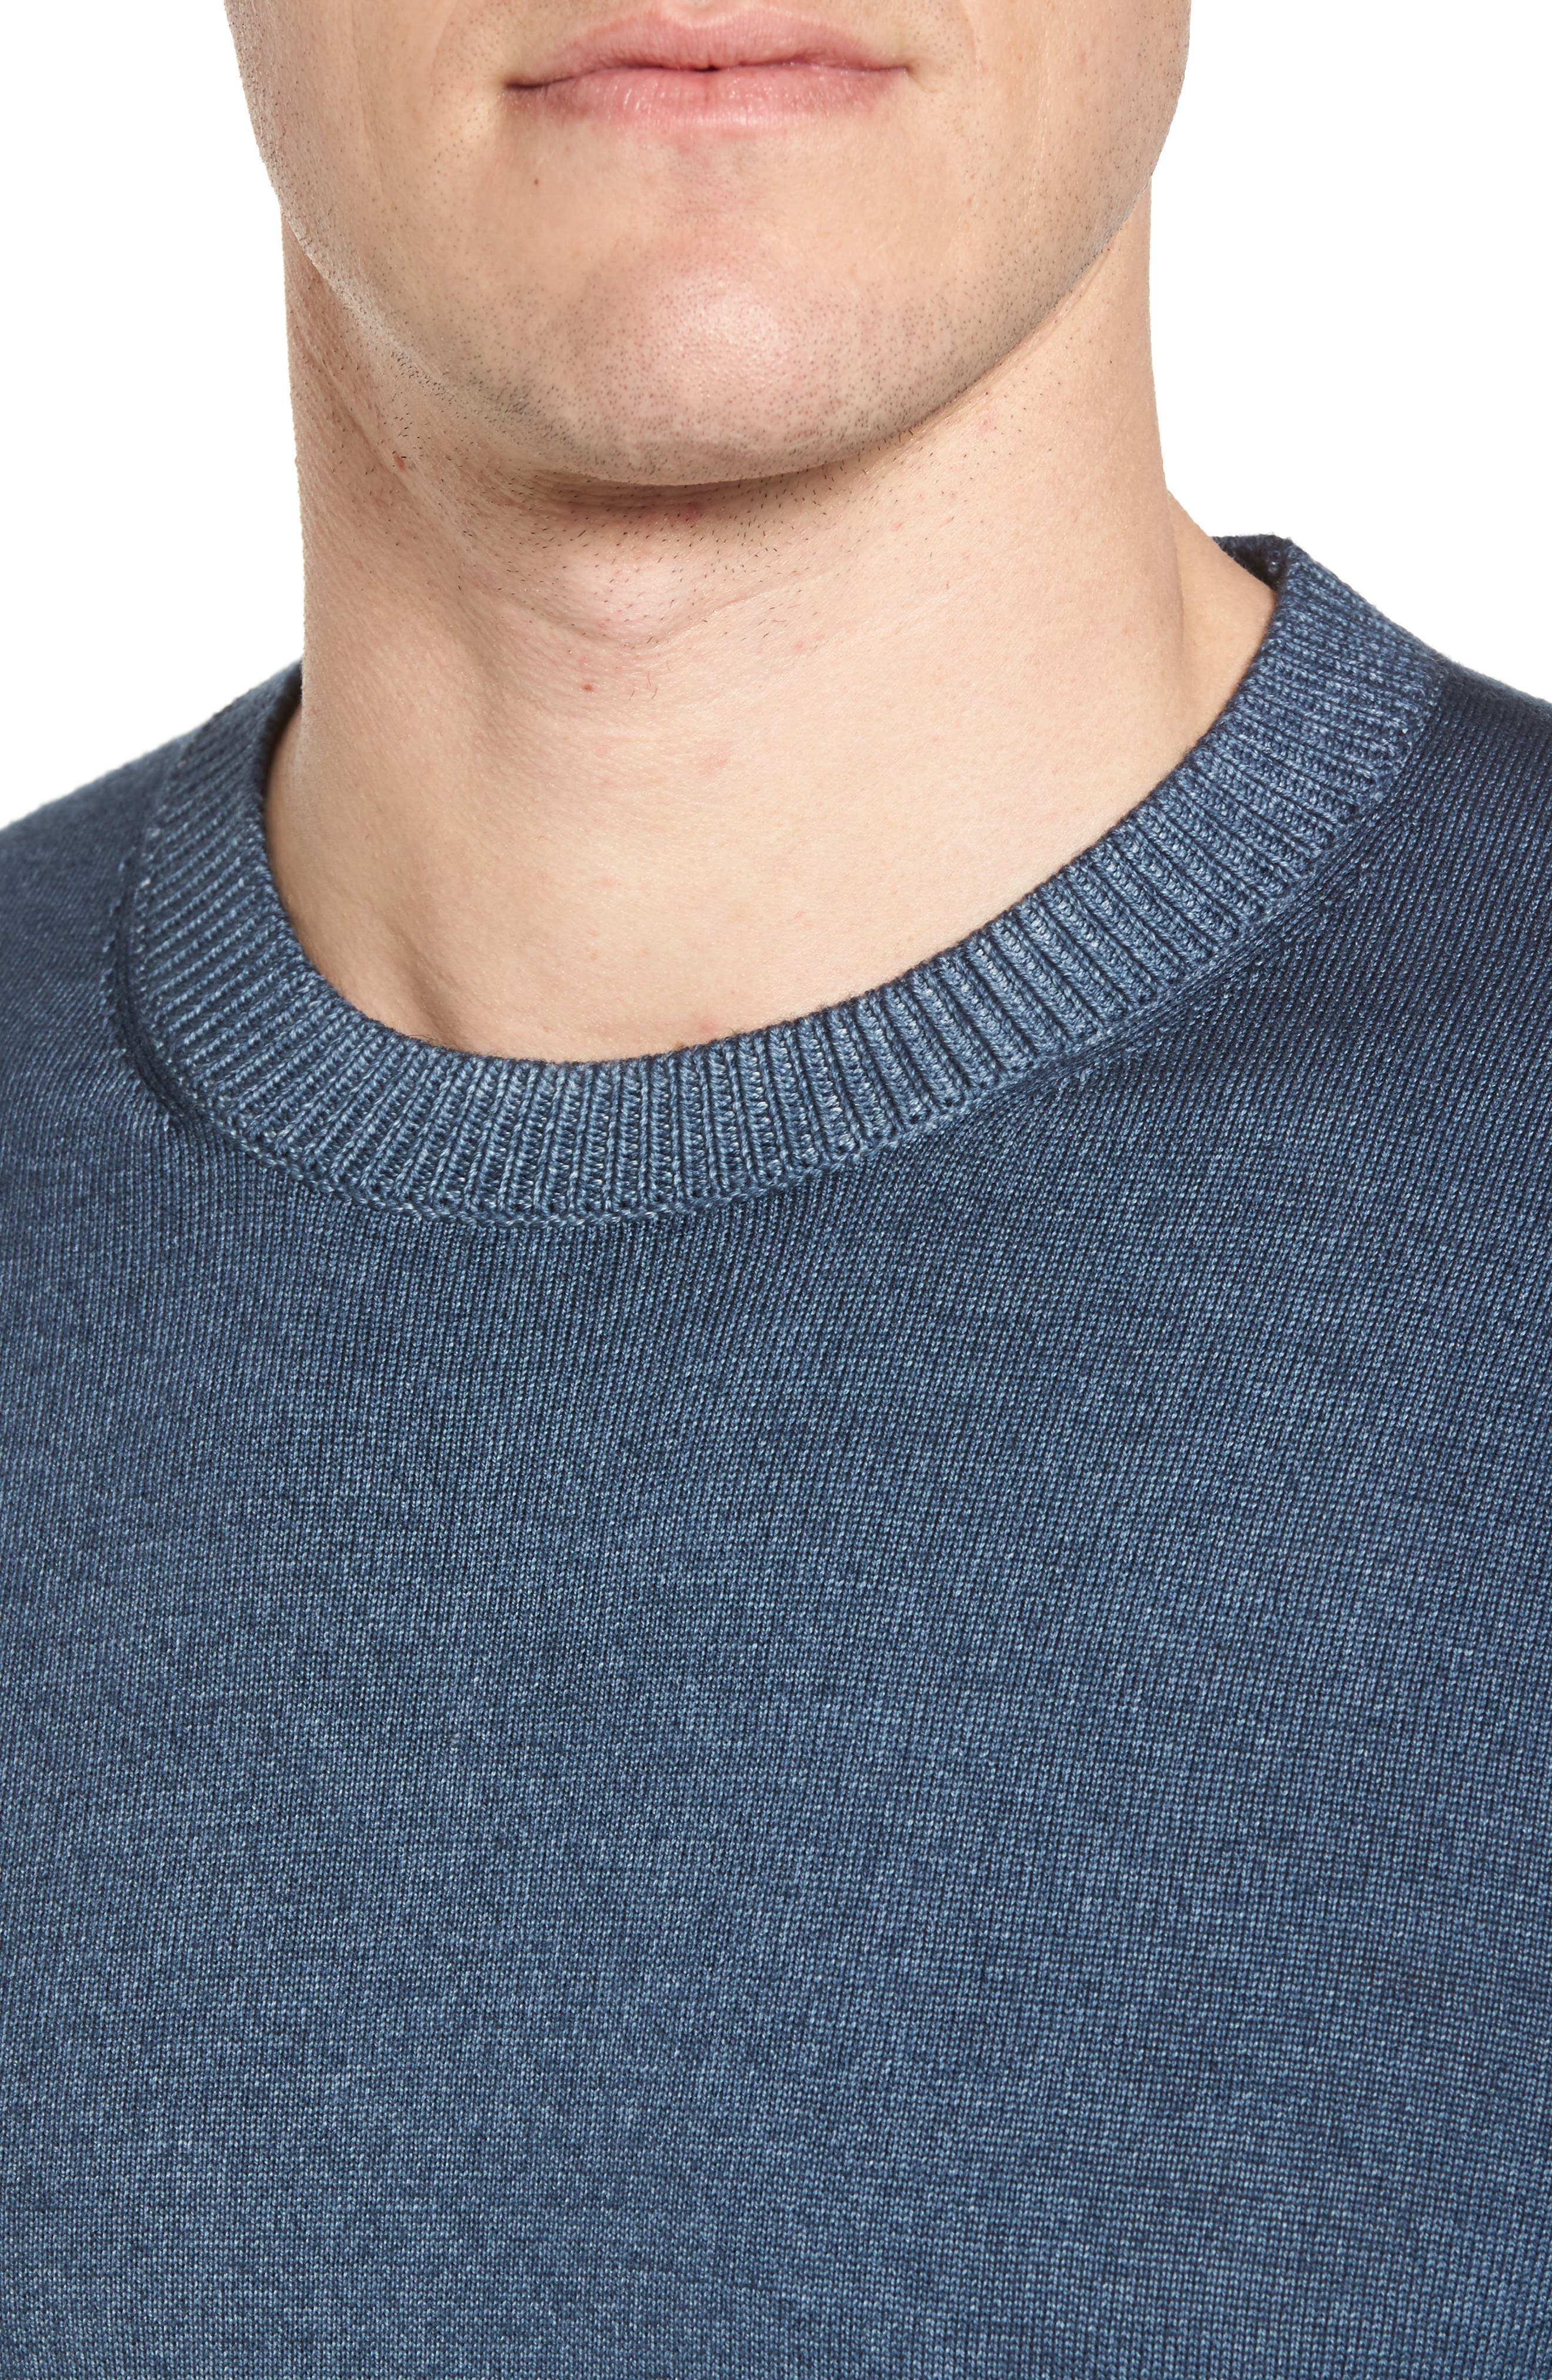 Lucky Trim Fit Wool Sweater,                             Alternate thumbnail 4, color,                             420